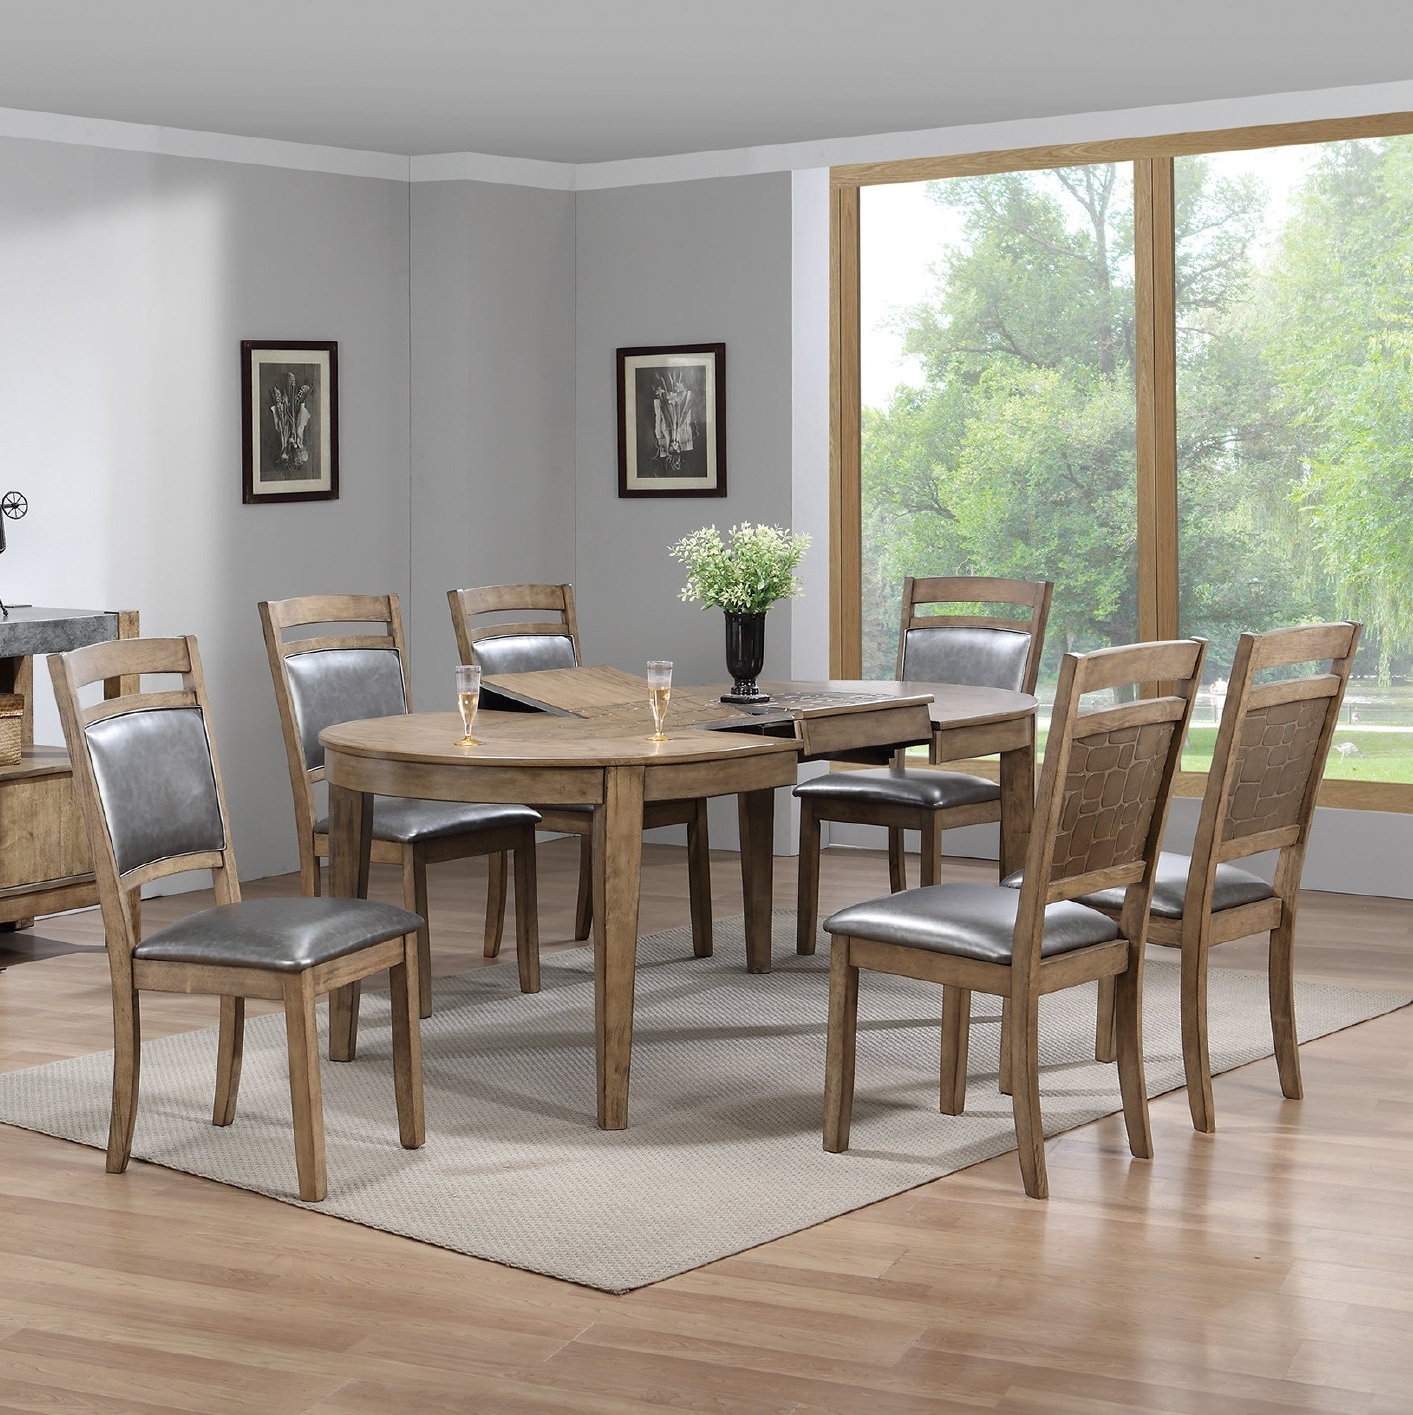 Newest Caira 7 Piece Rectangular Dining Sets With Upholstered Side Chairs Regarding Gracie Oaks Warthen 7 Piece Dining Set (View 14 of 25)